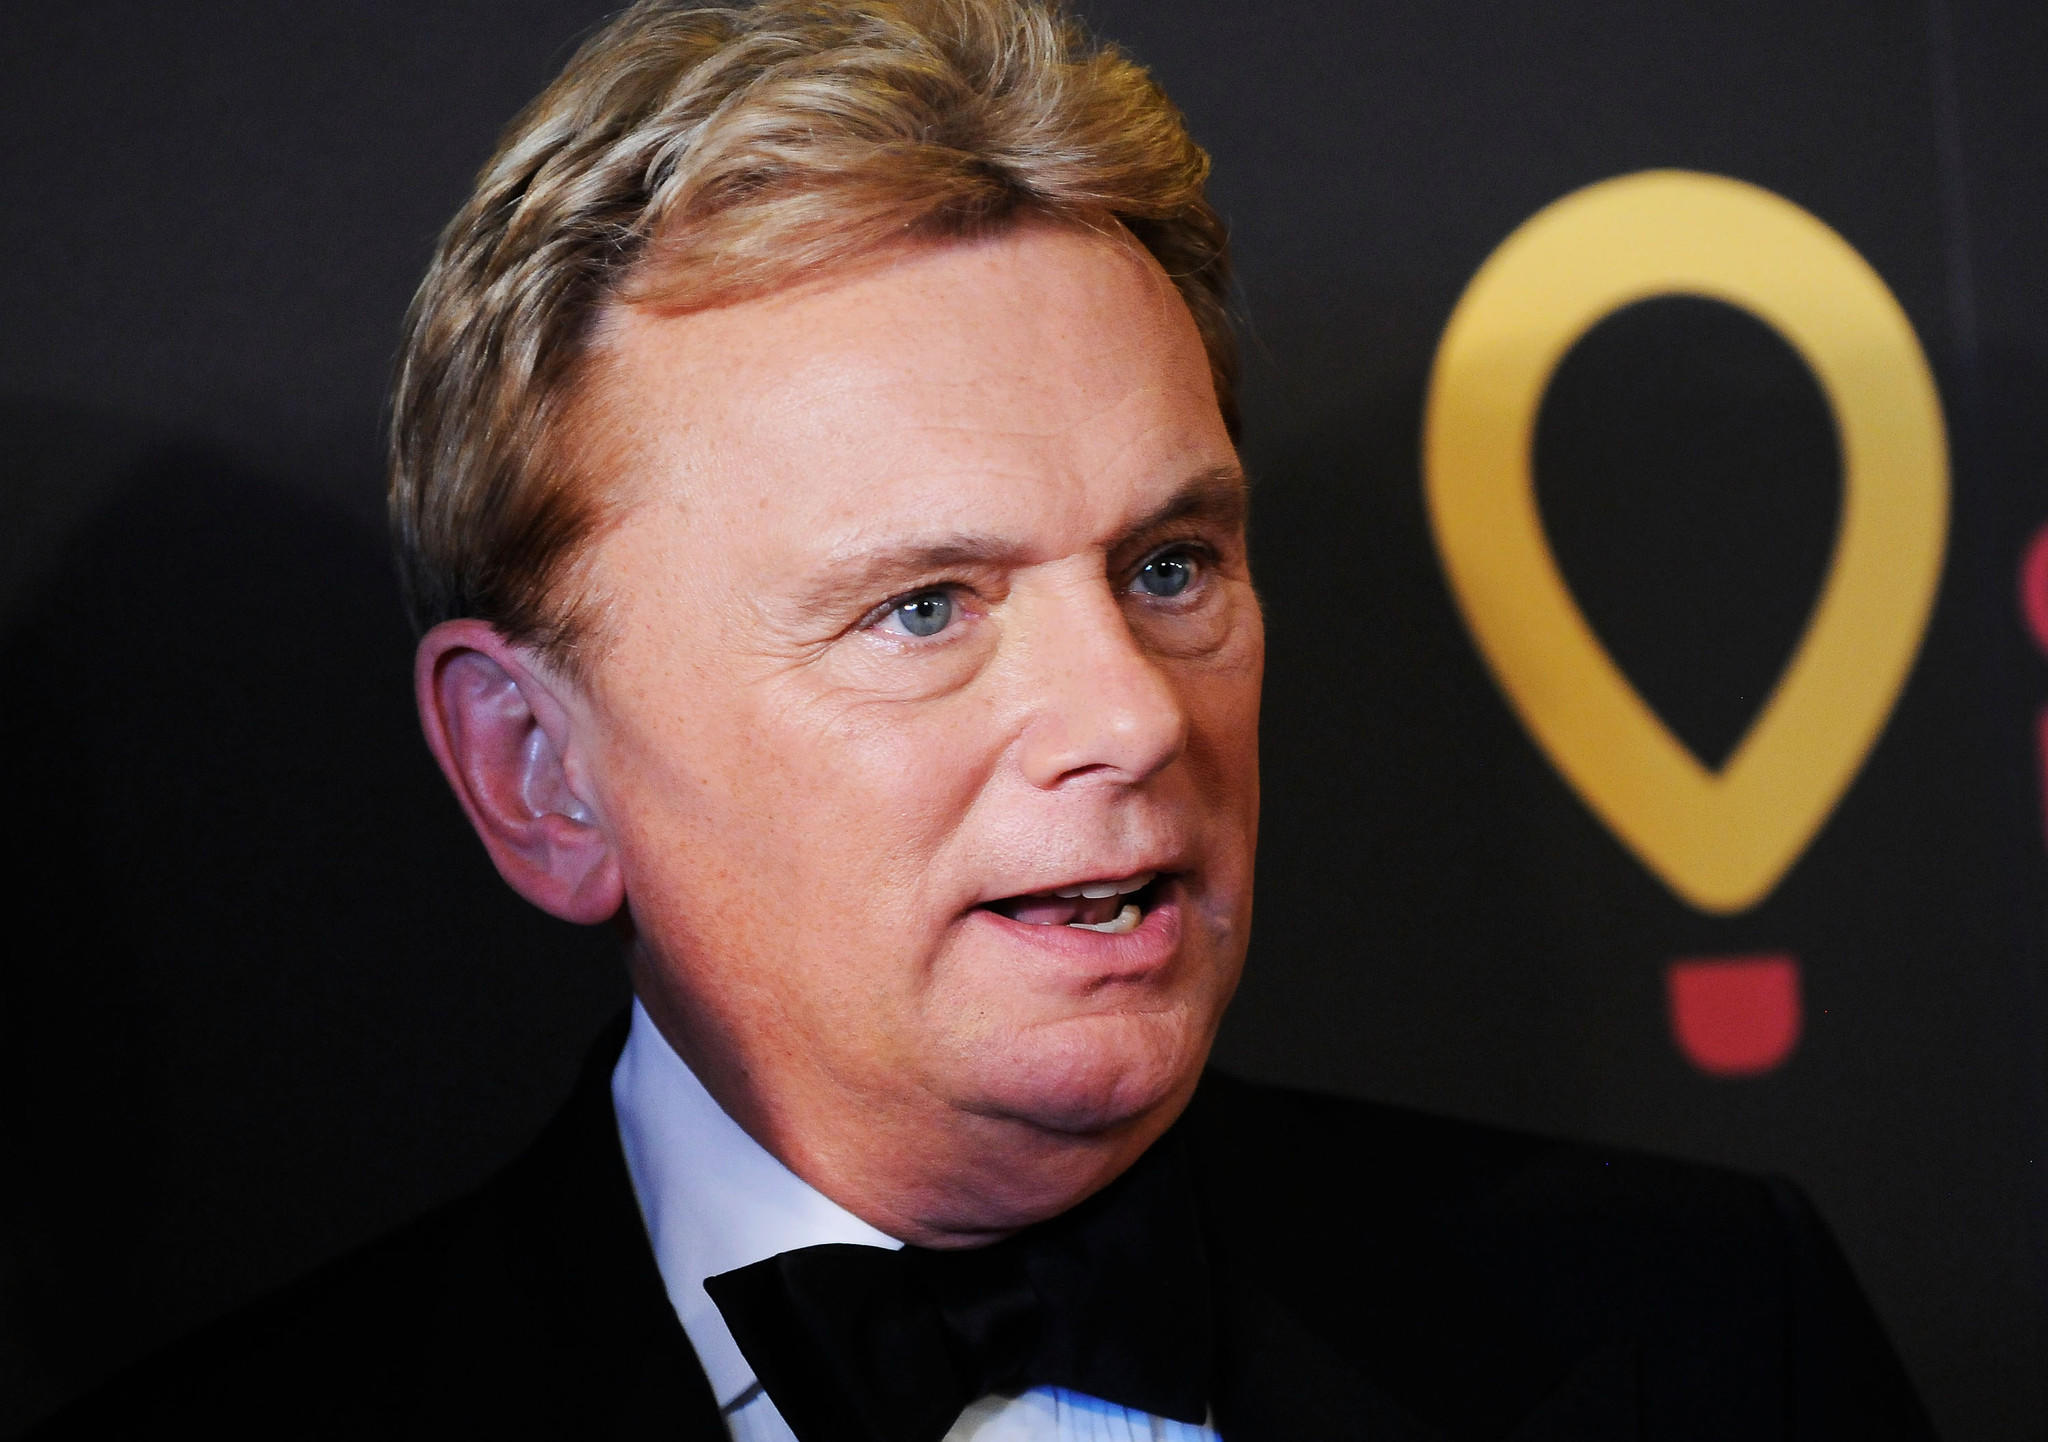 Game Show Host Pat Sajak arrives at the 38th Annual Daytime Entertainment Emmy Awards.